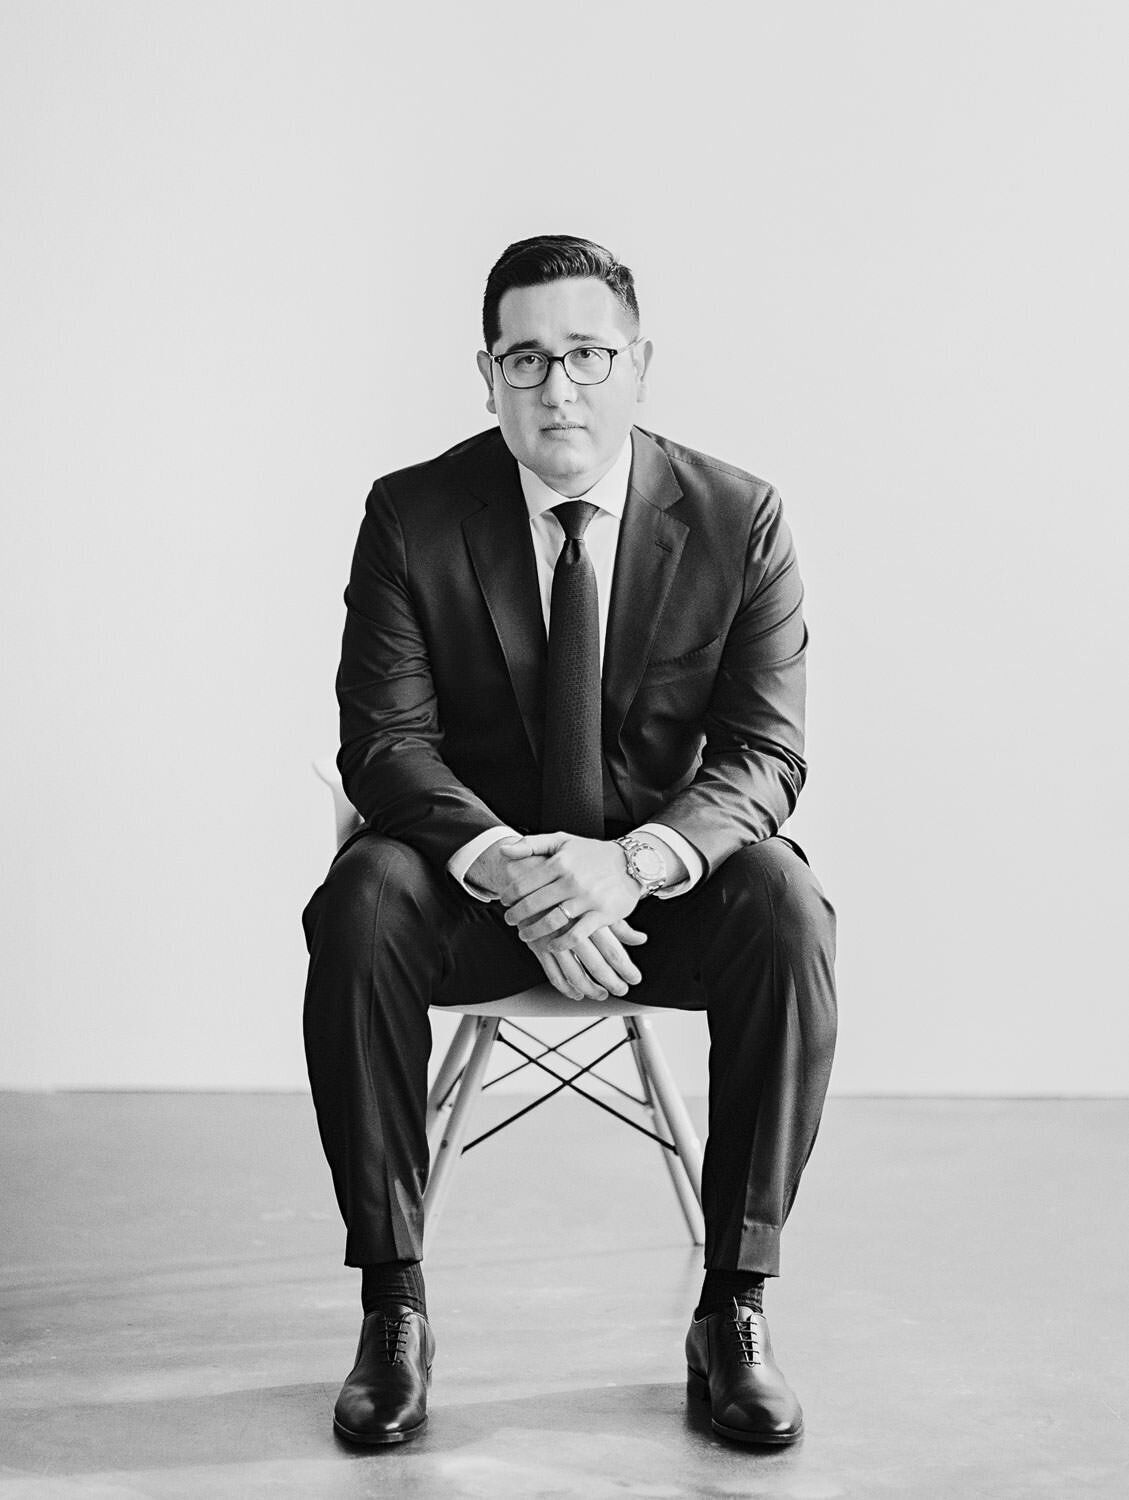 man in glasses and suit sitting in chair black and white